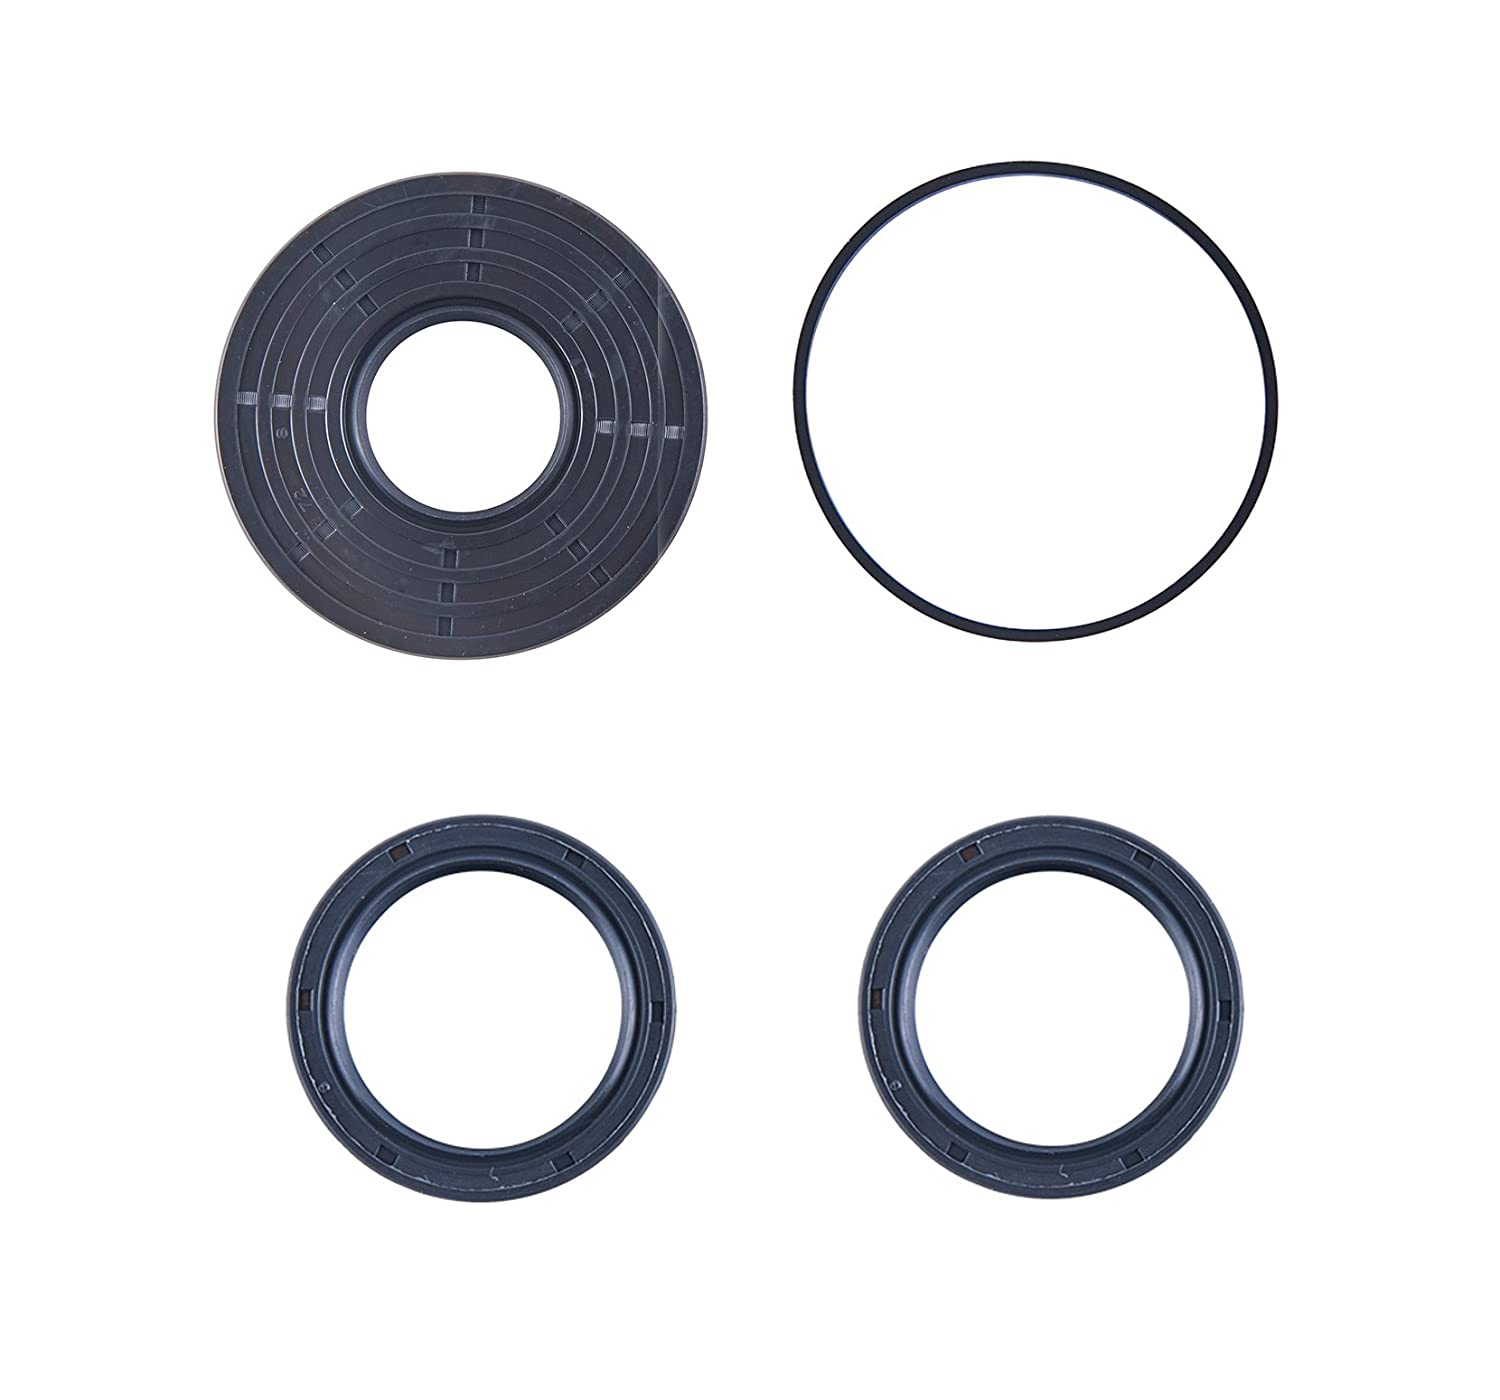 East Lake Axle front differential seal kit compatible with Polaris RZR 800 RZR S 800 2008 2009 2010